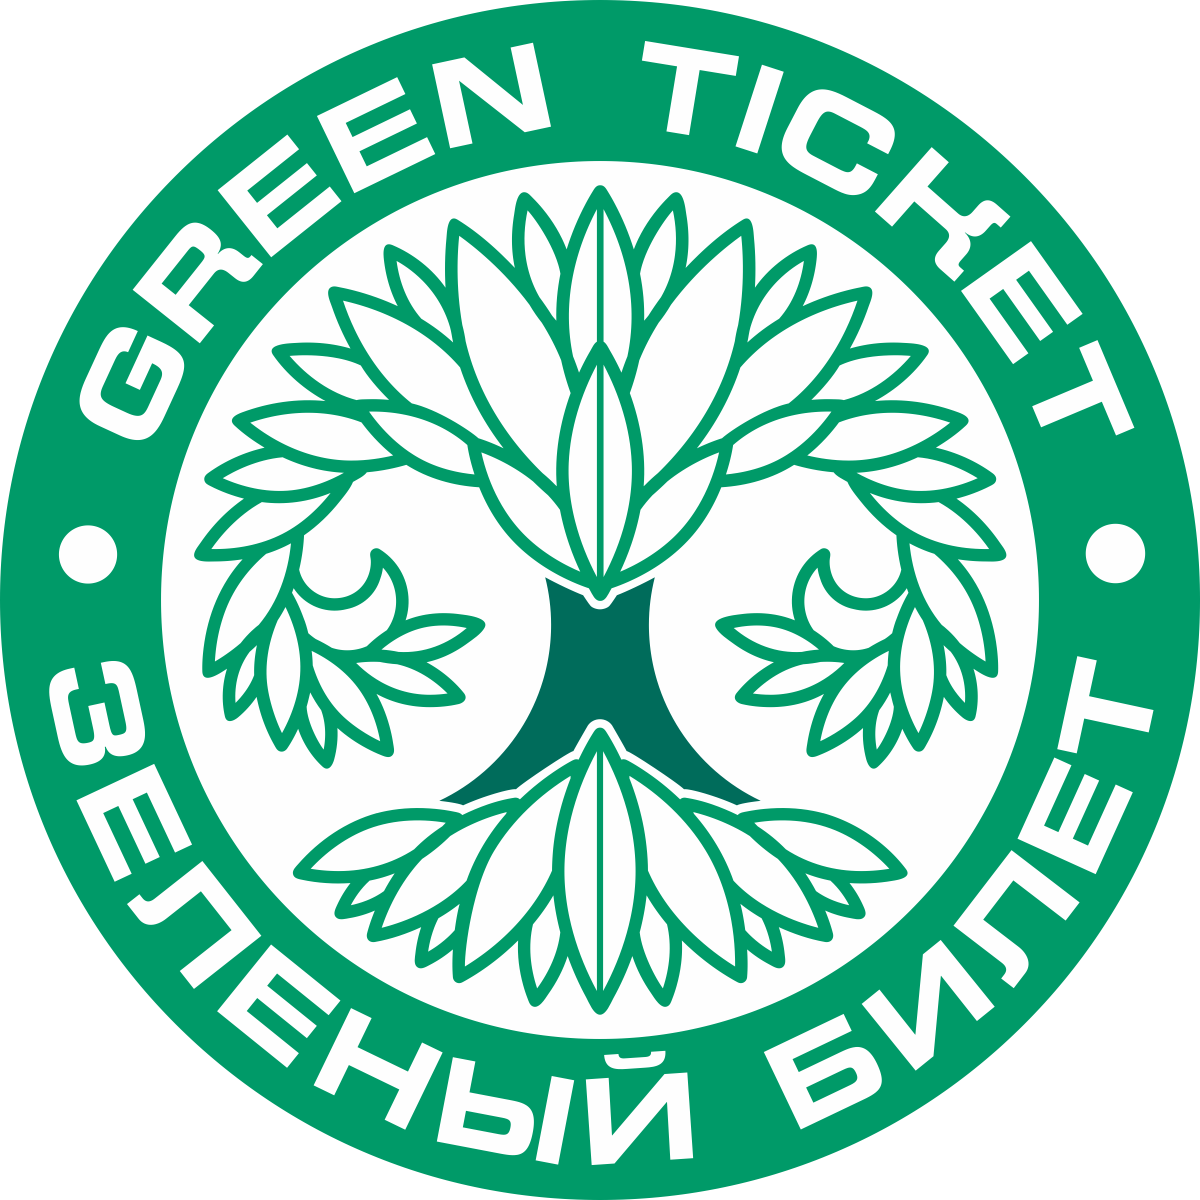 greenego_GreenTicket_logo_green1